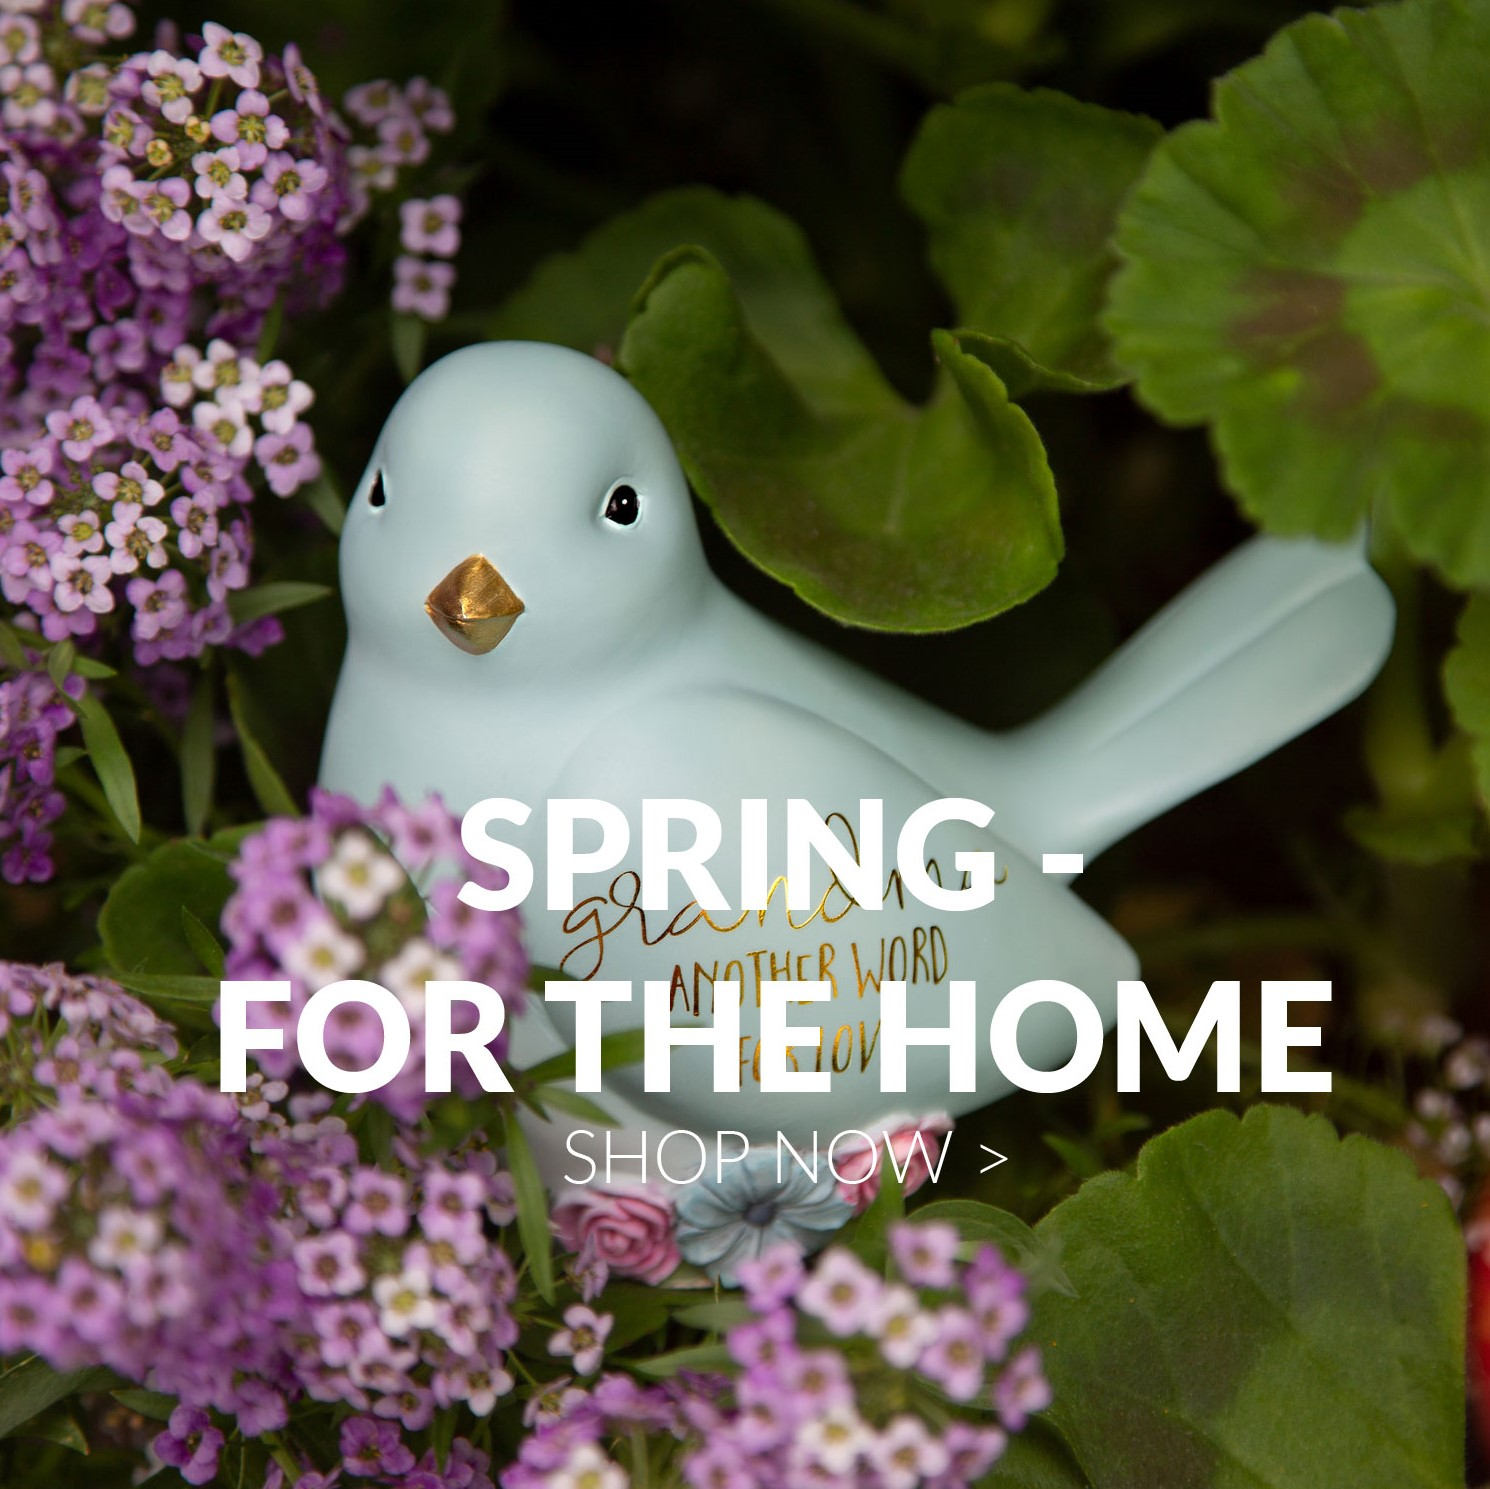 Spring - For The Home